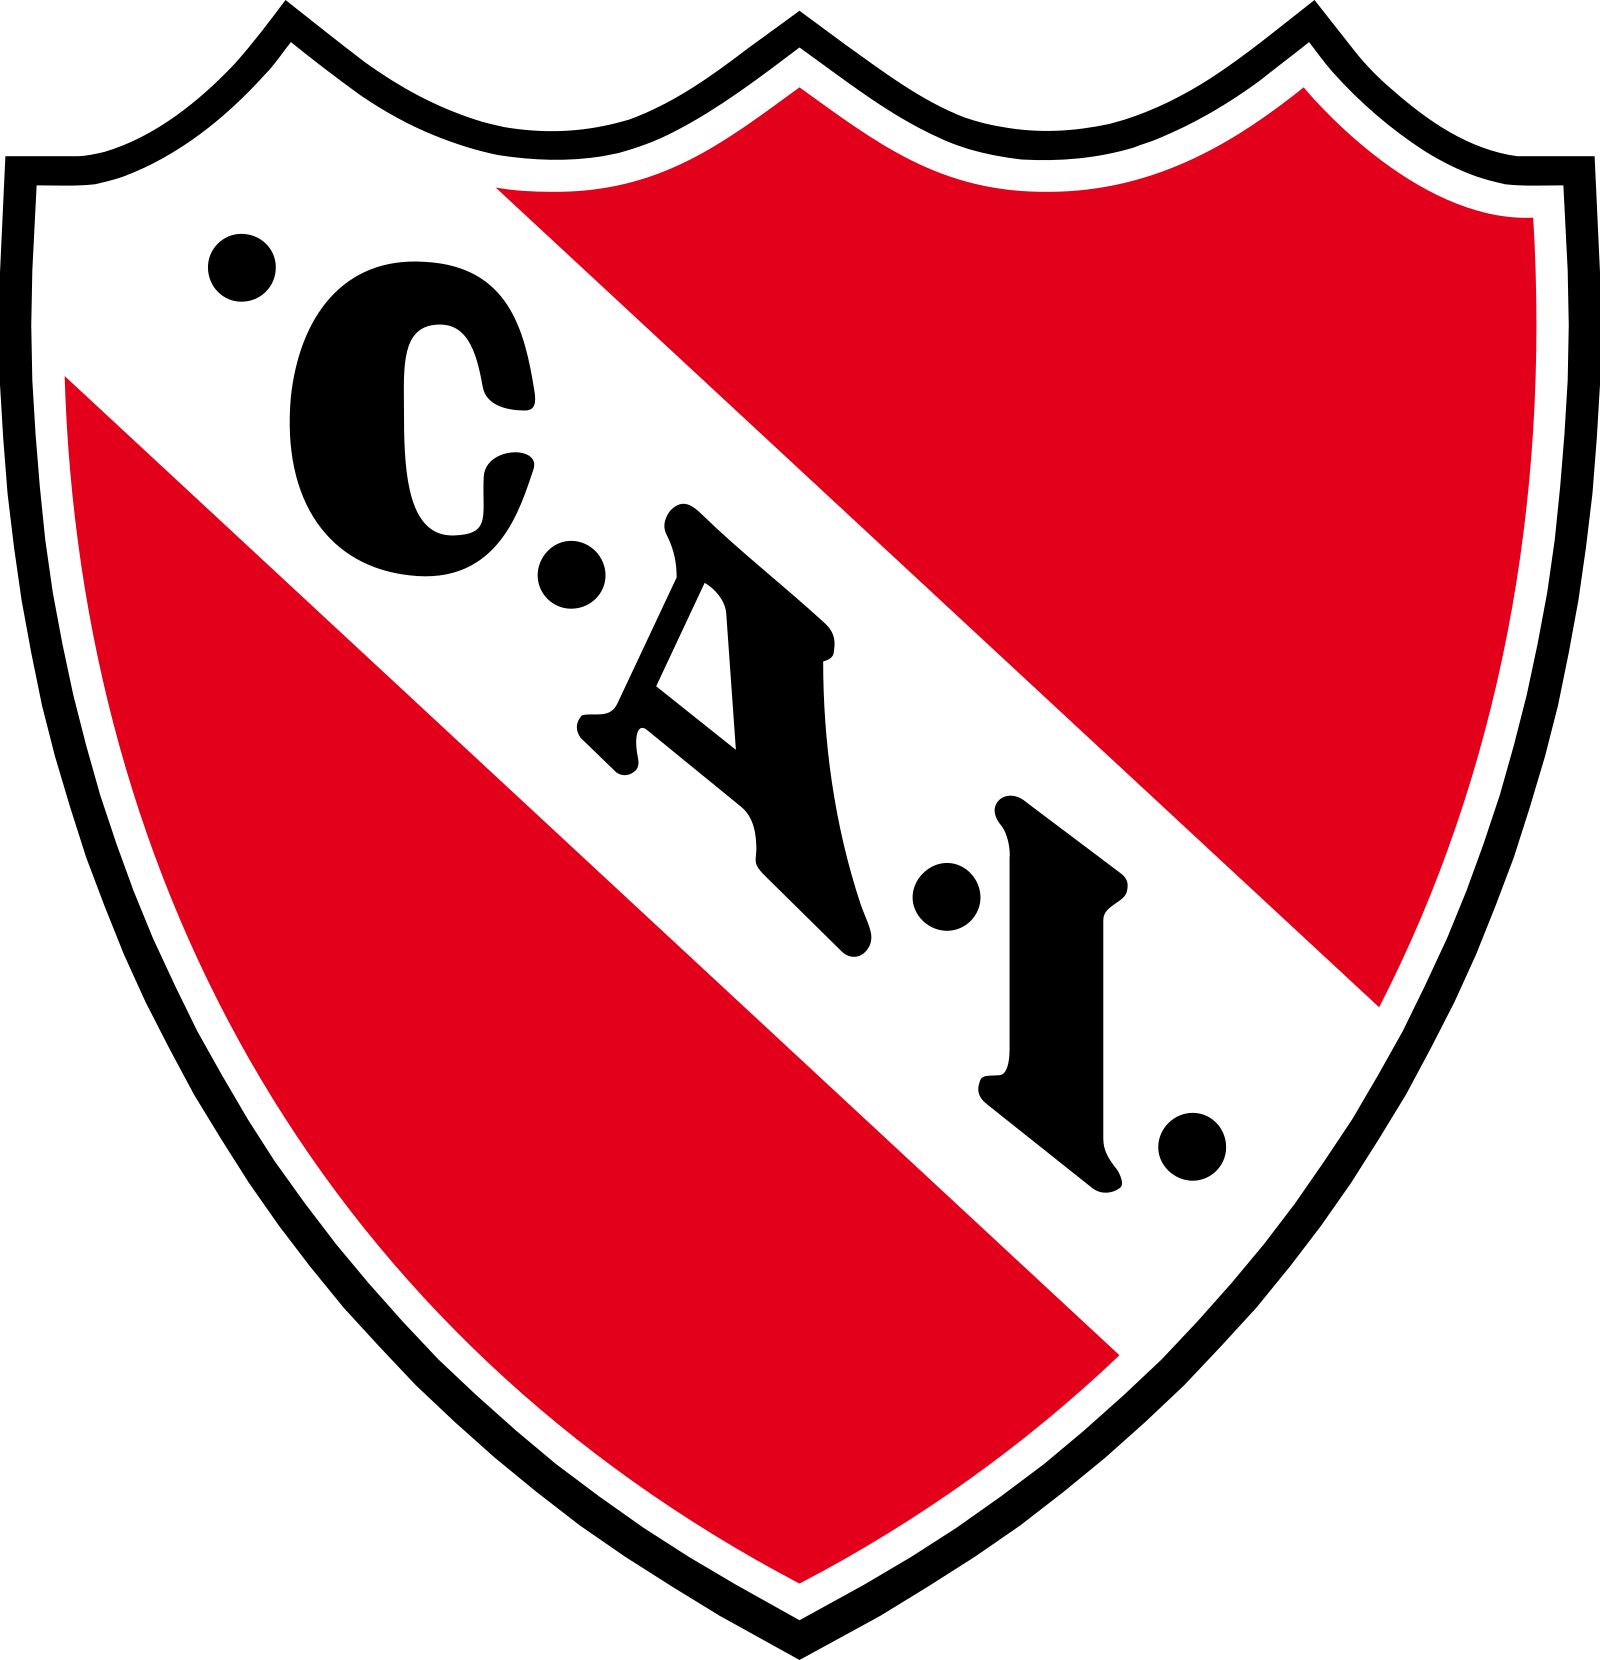 clube independiente logo escudo 2 - Club Atlético Independiente Logo